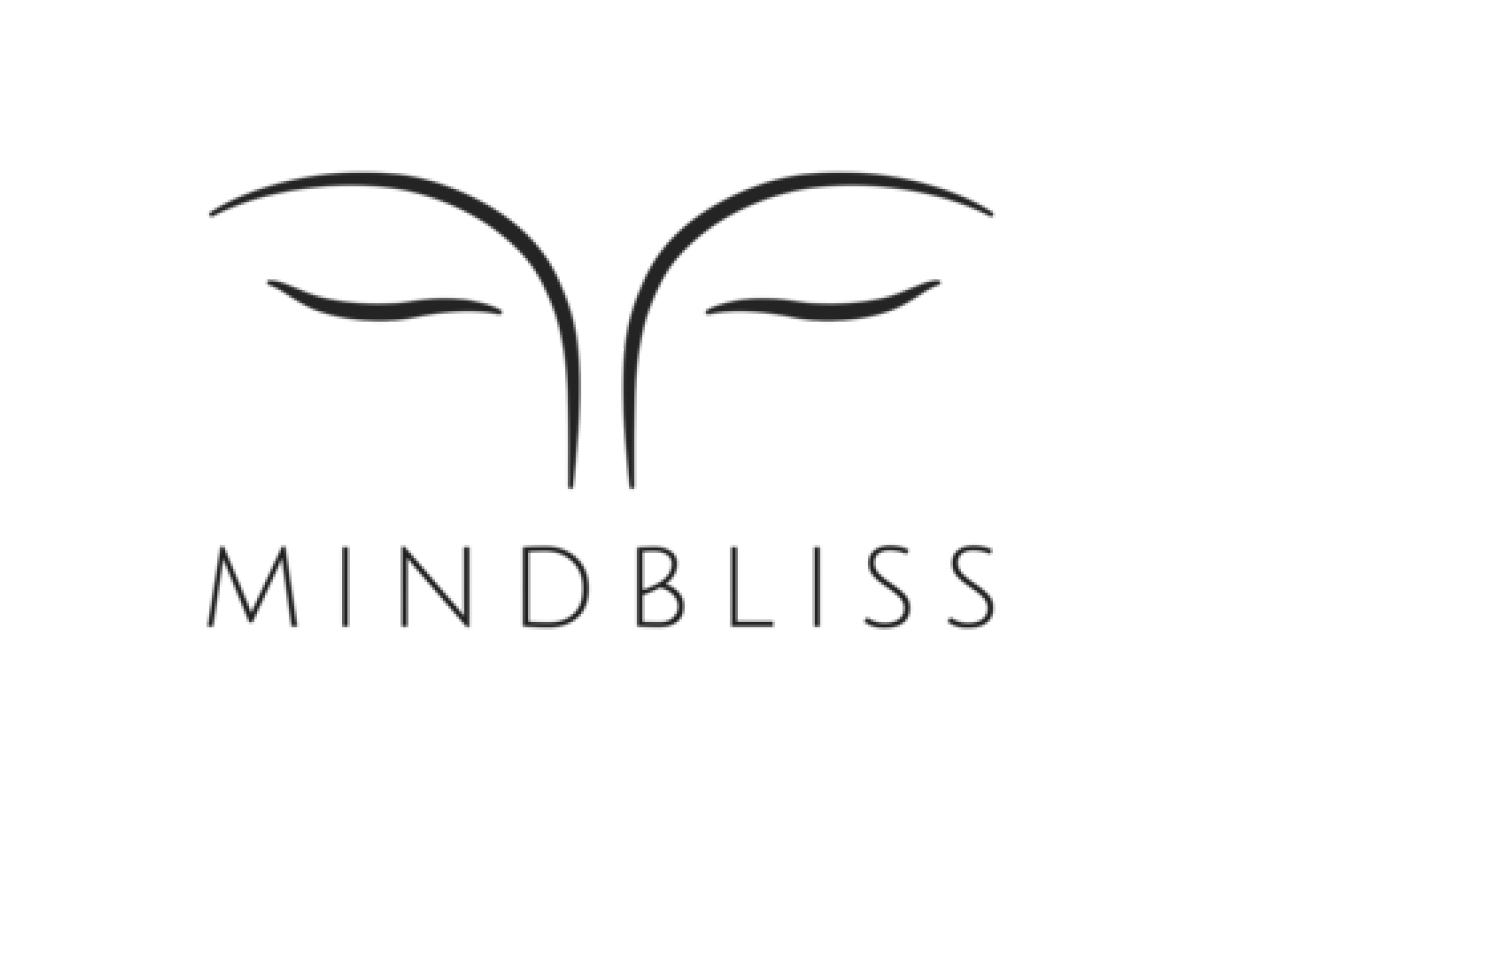 MINDBLISS APP - Through digital PR, outreach and competitive research, Within just 1 month of thecampaign, the client: Mindbliss got on the first page of Google for the keyphrase: